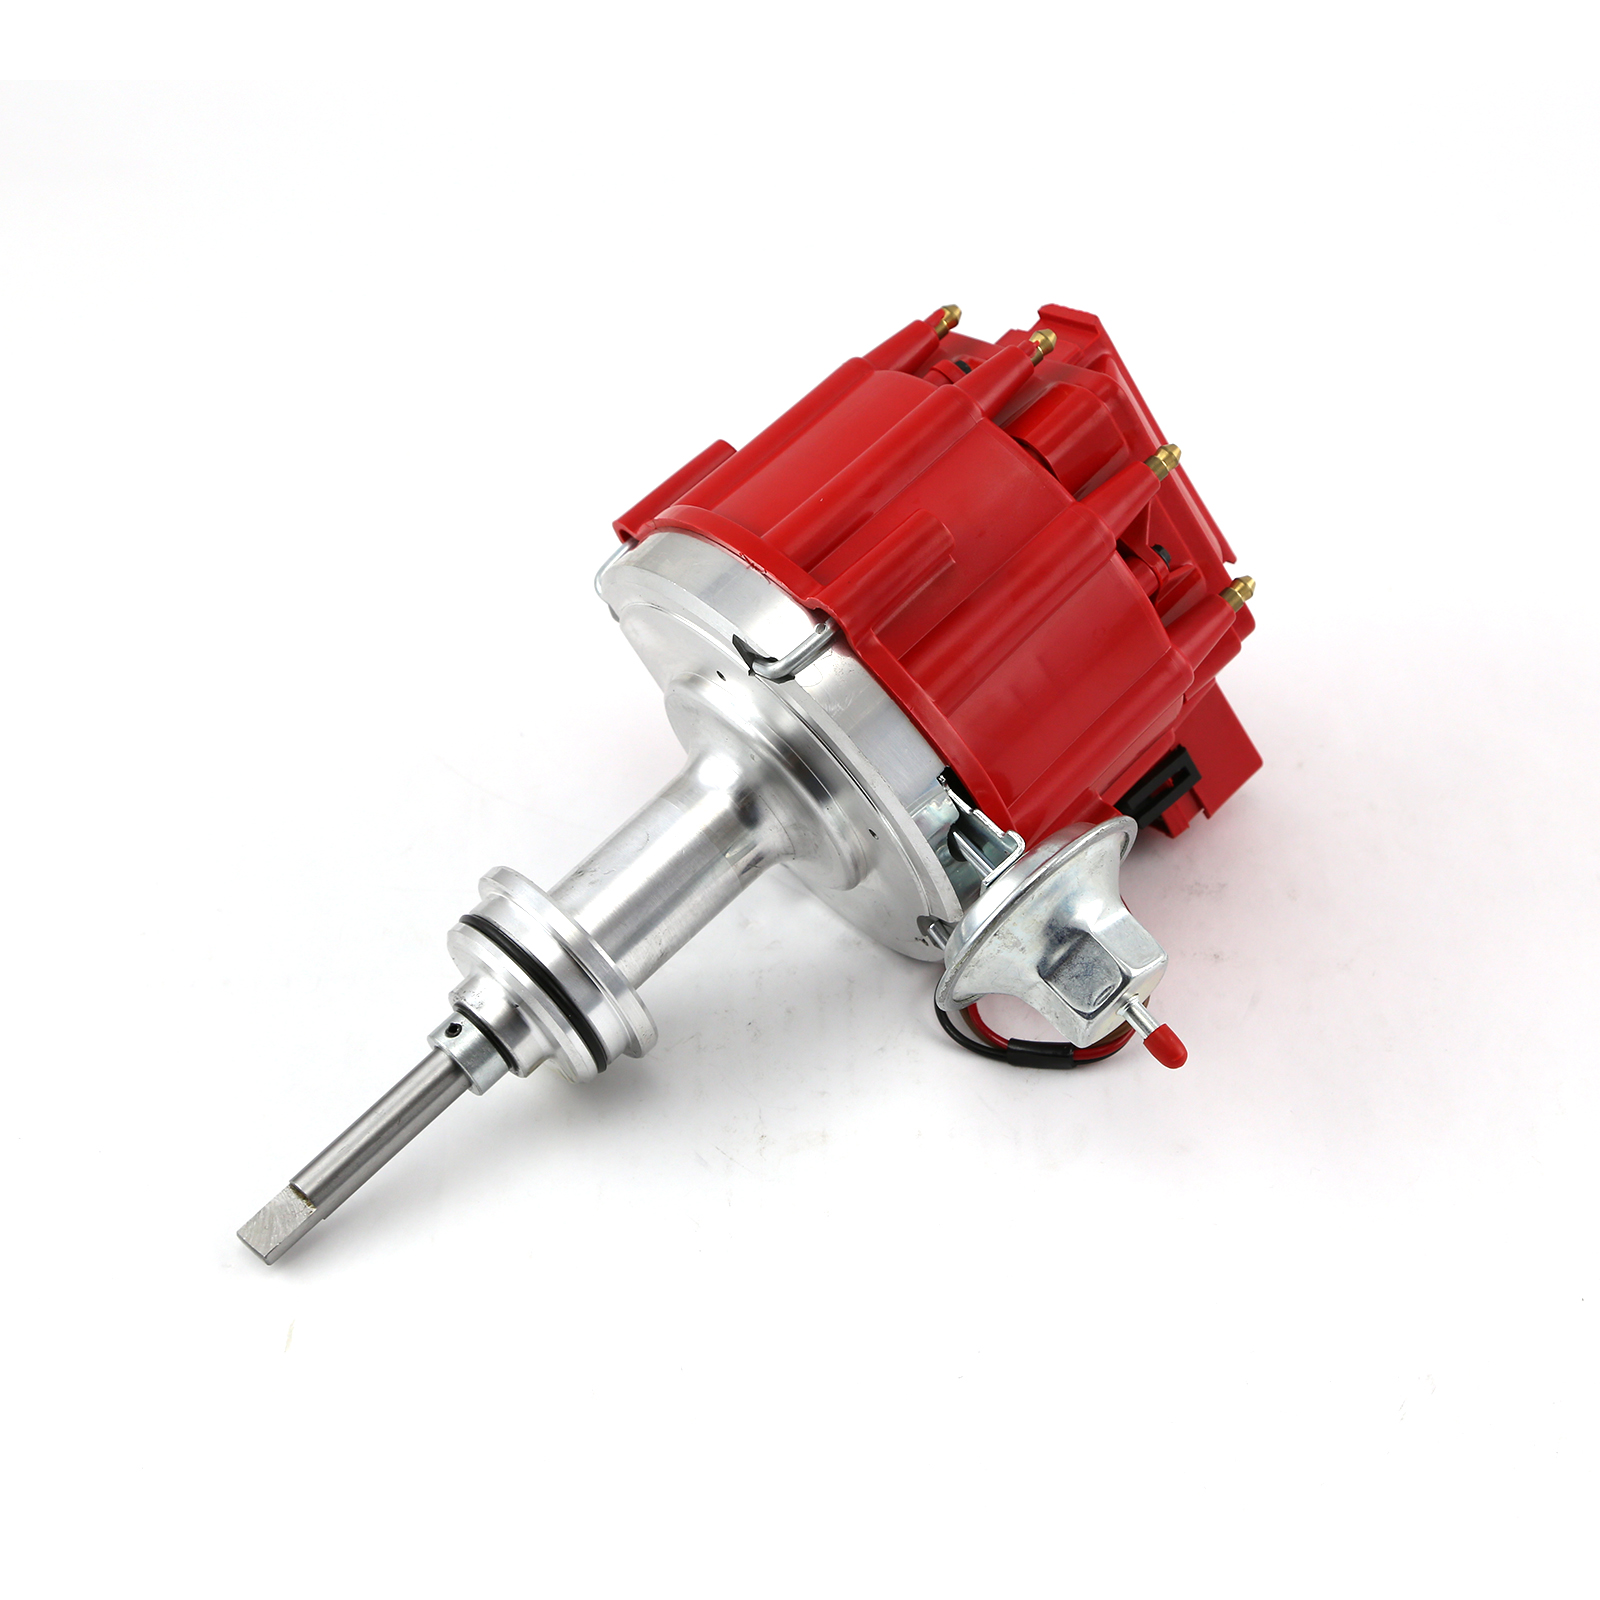 upgrade a tach drive distributor to electronic ignition